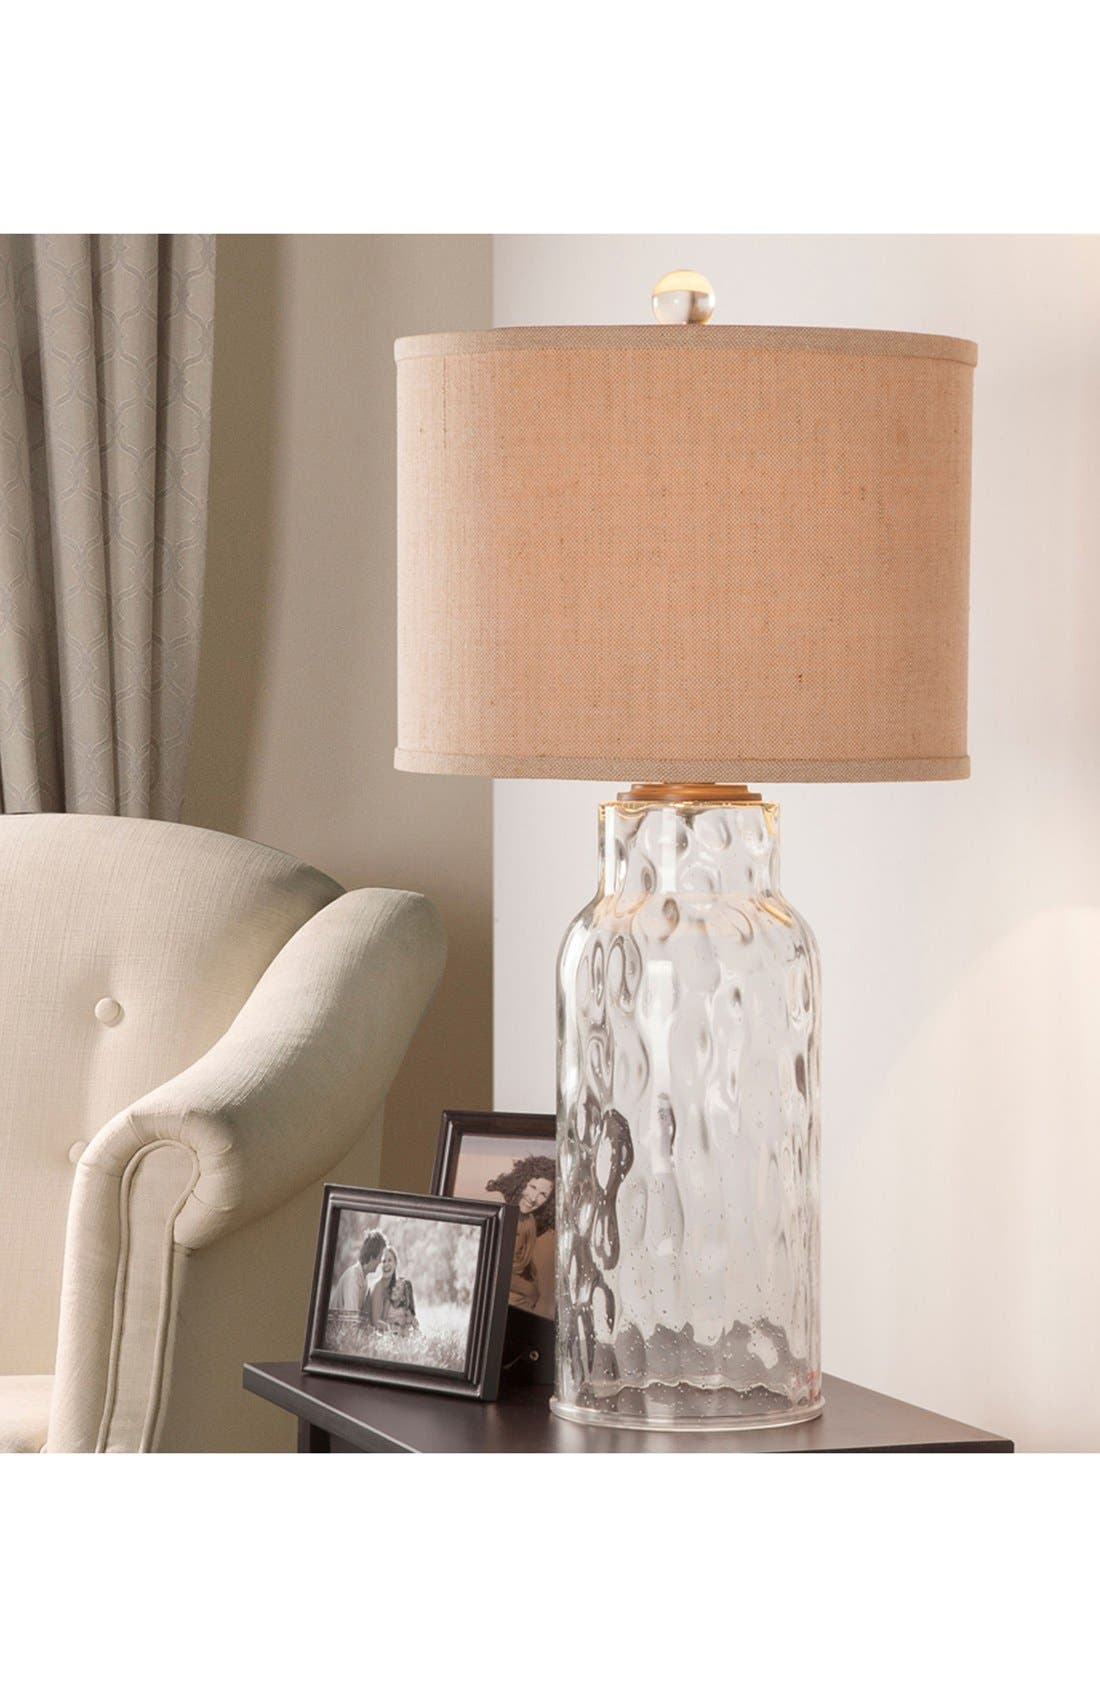 Clear Dimpled Glass Table Lamp,                             Alternate thumbnail 2, color,                             Clear Glass/ Dark Bronze